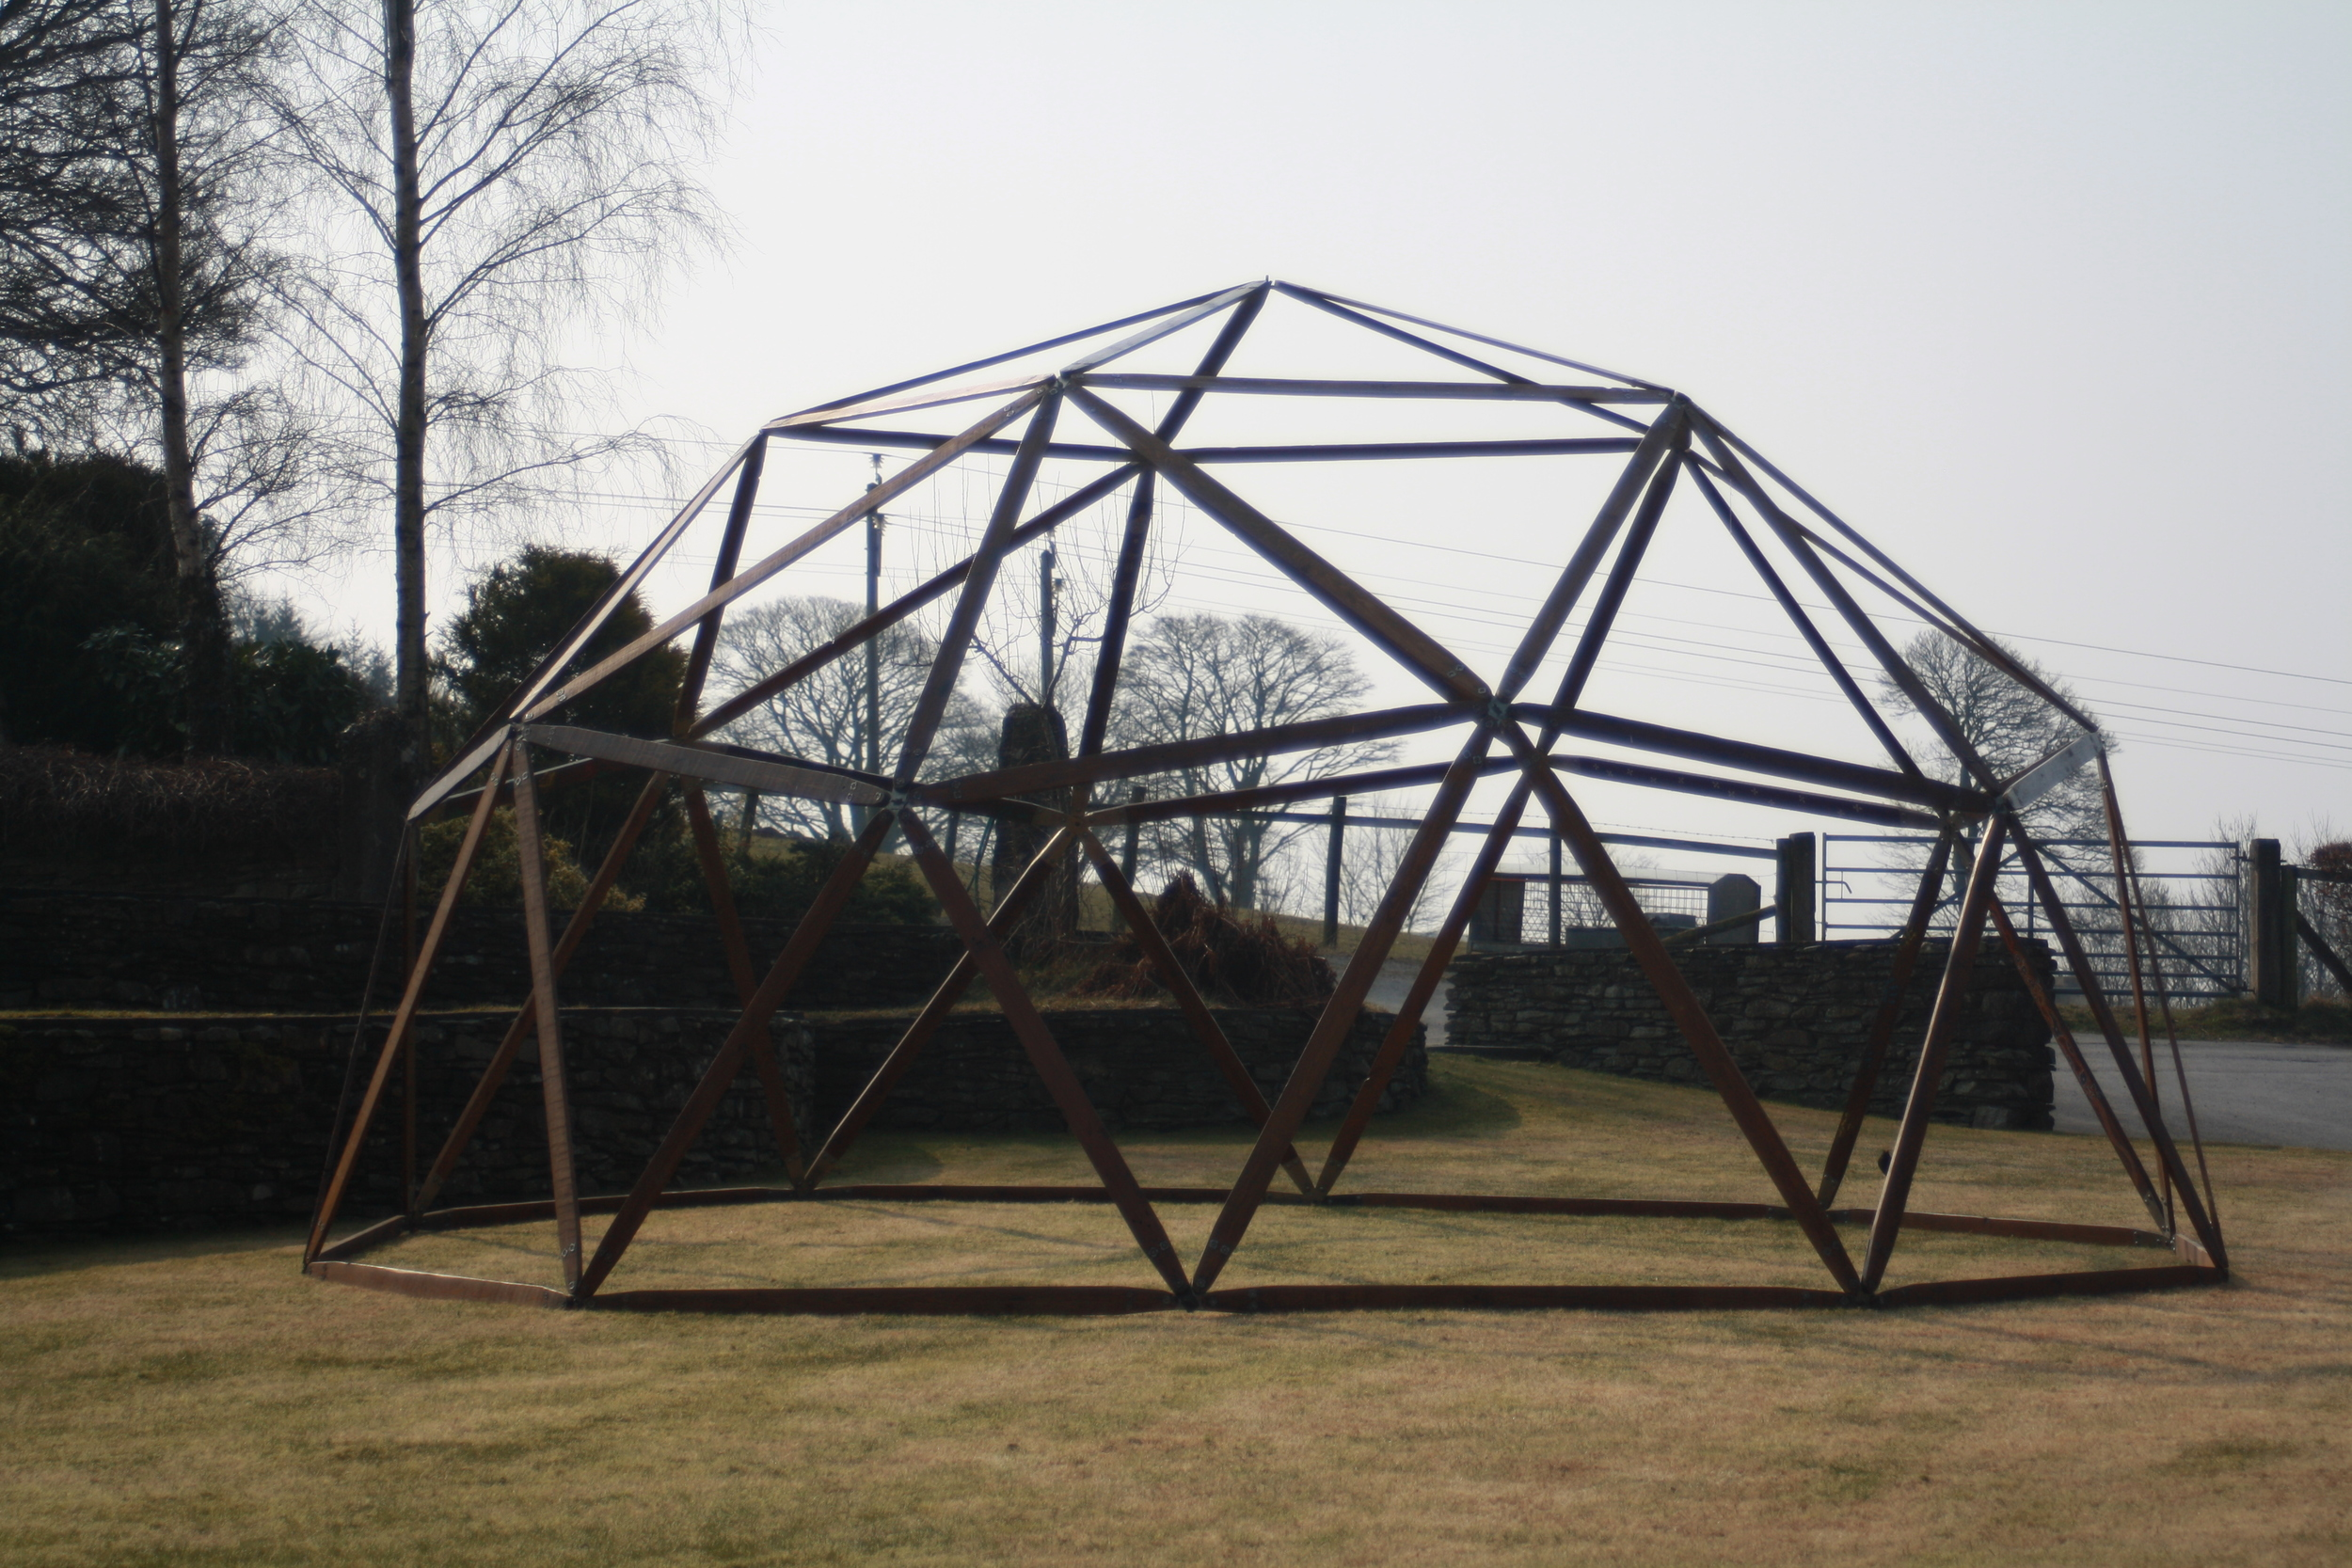 The completed six metre dome frame!  Impressive.